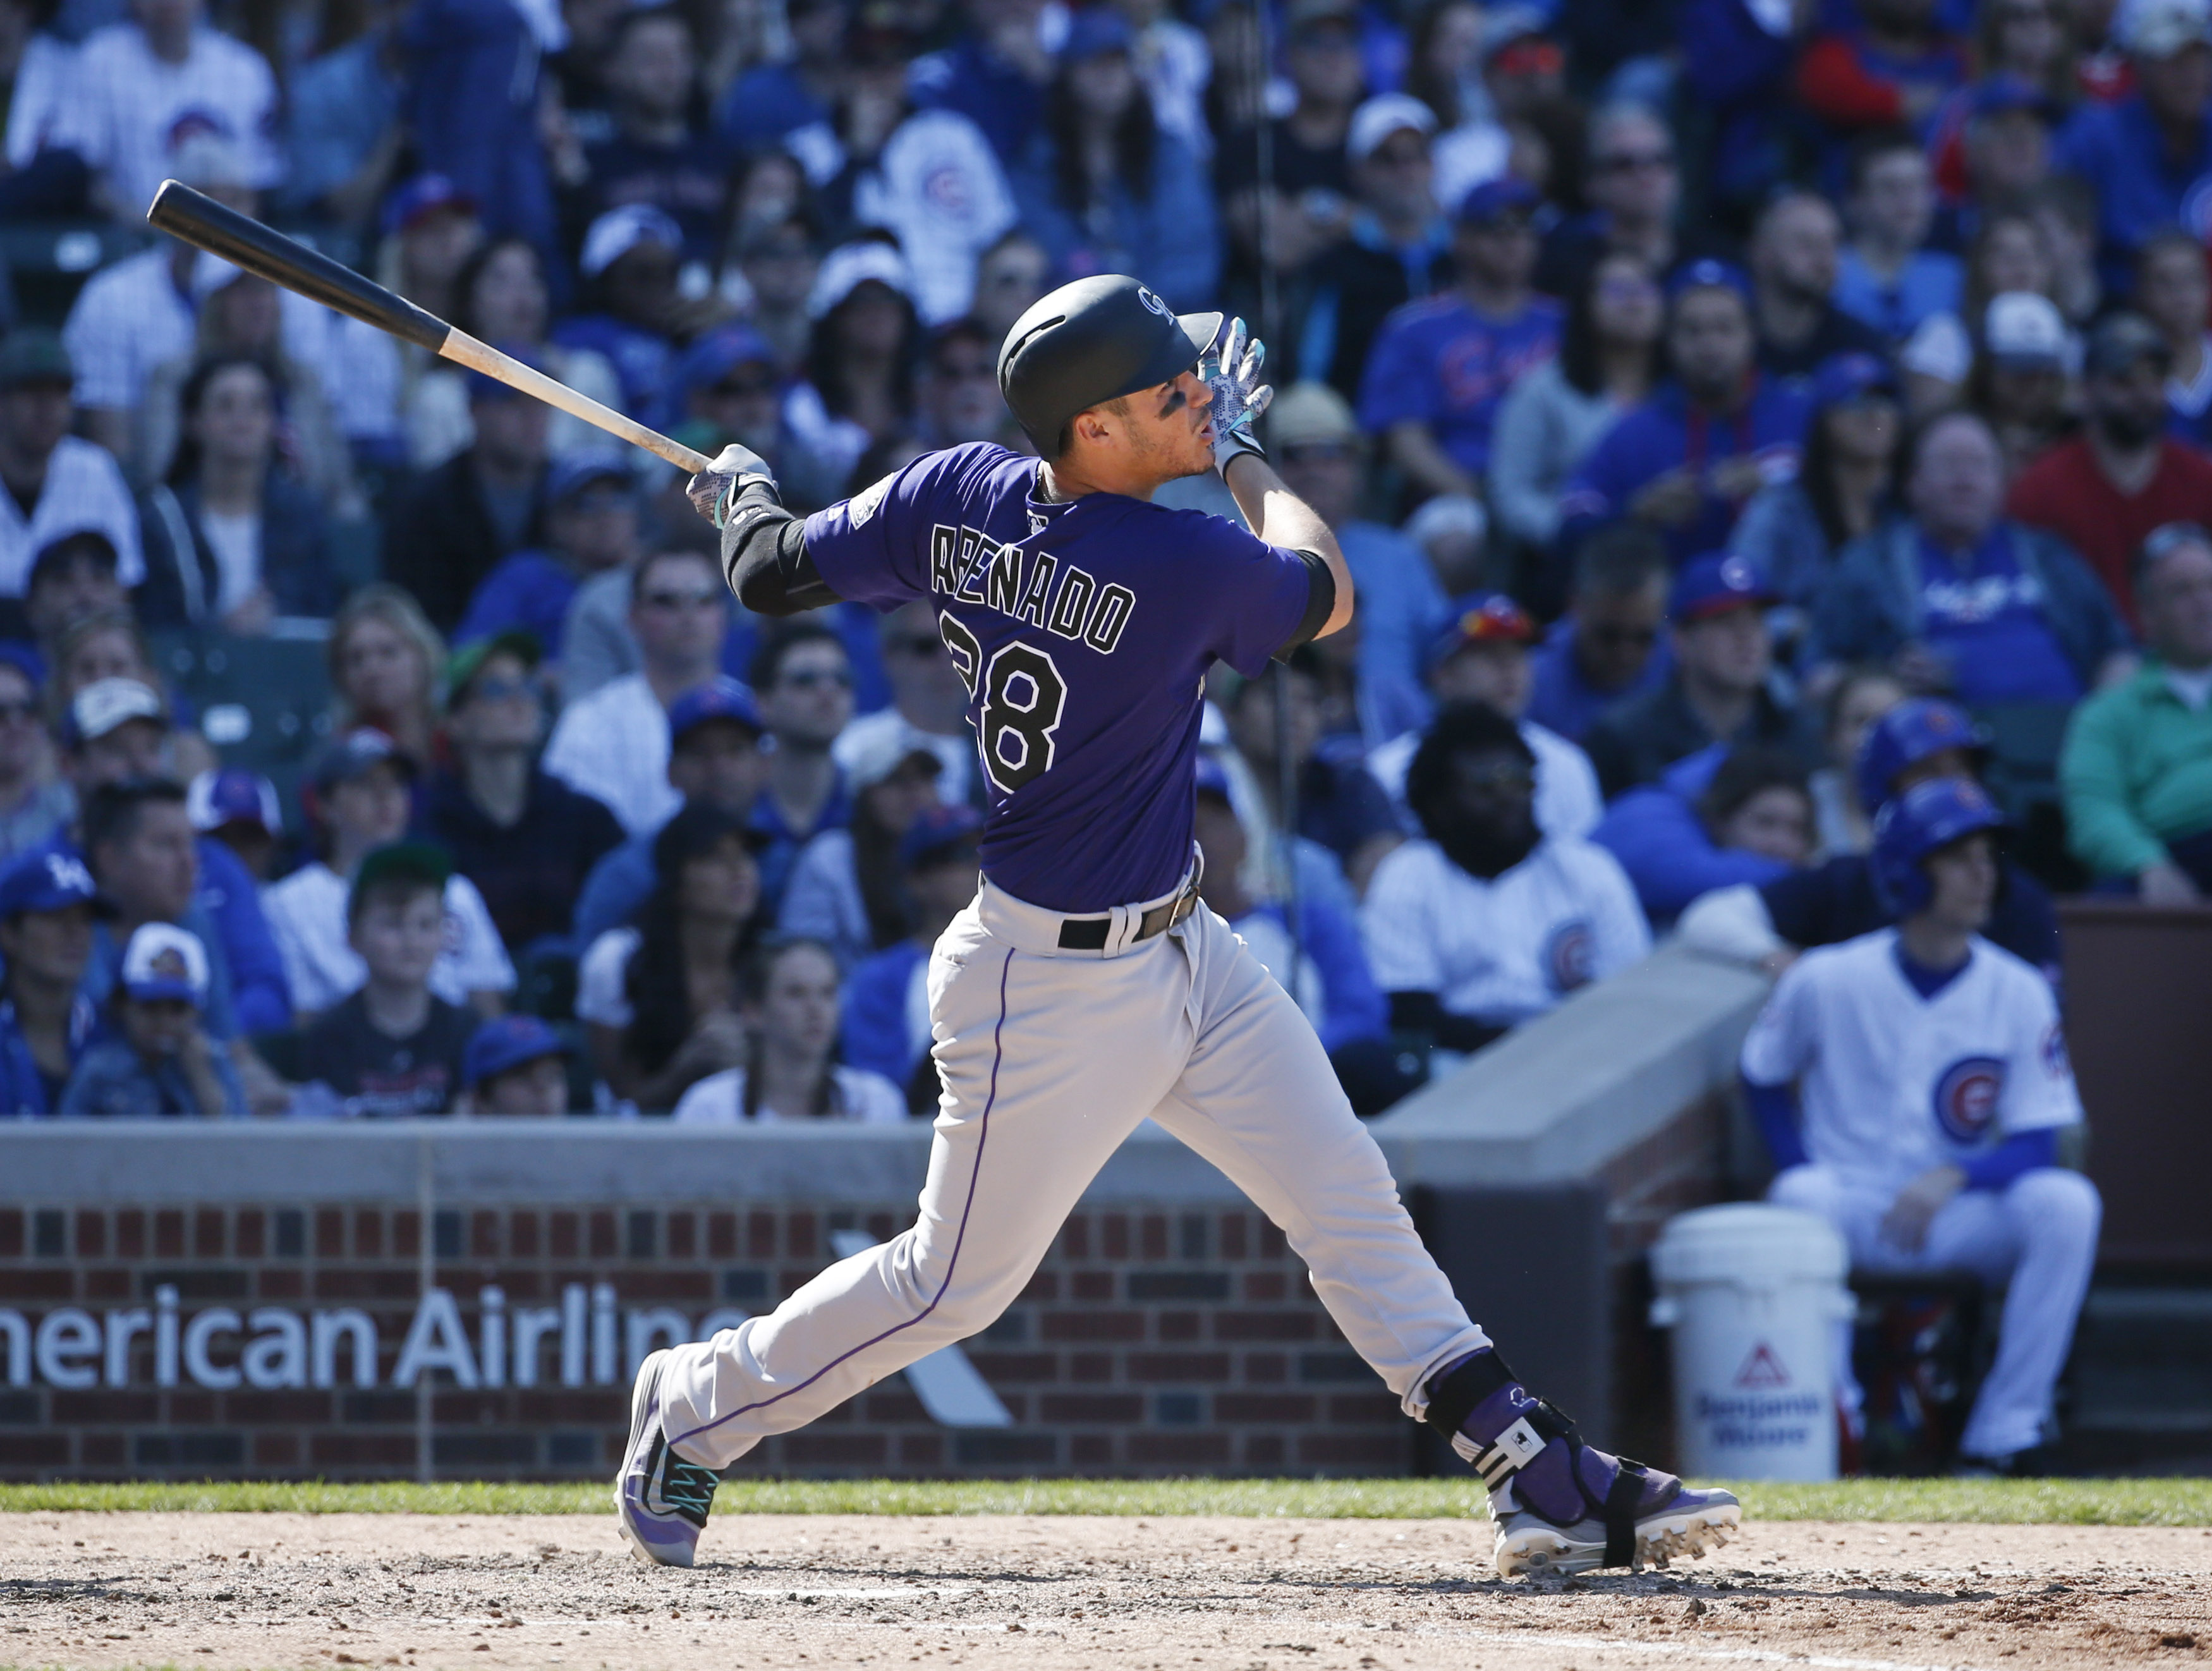 Apr 17, 2016; Chicago, IL, USA; Colorado Rockies third baseman Nolan Arenado (28) hits a solo home run during the ninth inning against the Chicago Cubs at Wrigley Field. Mandatory Credit: Kamil Krzaczynski-USA TODAY Sports